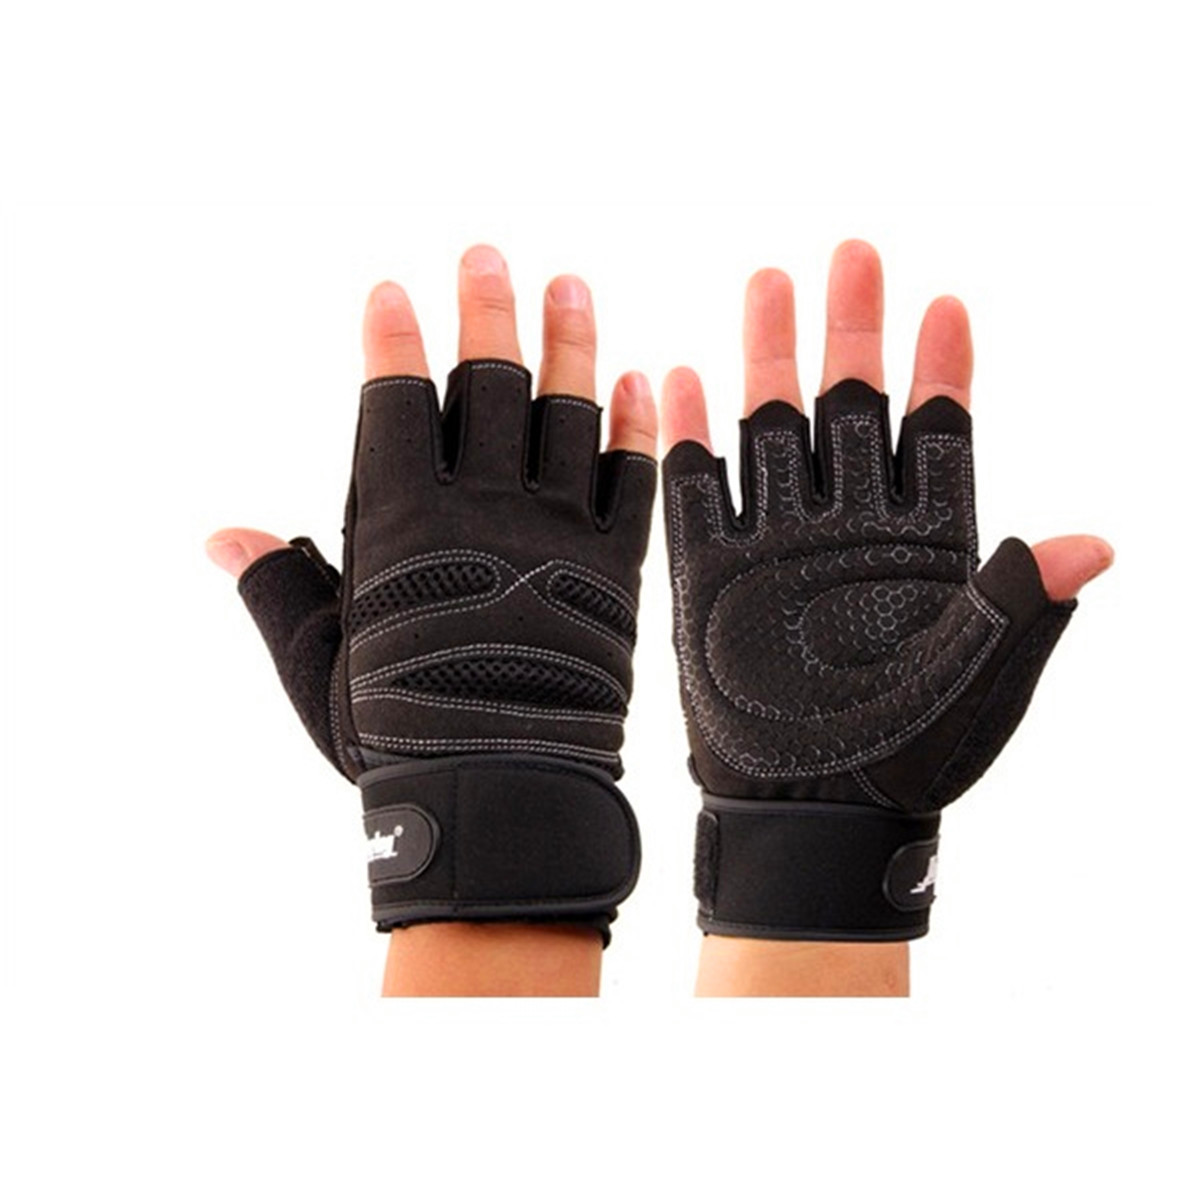 Weight Lifting Gloves Best Workout Fitness Gym Training Bodybuilding